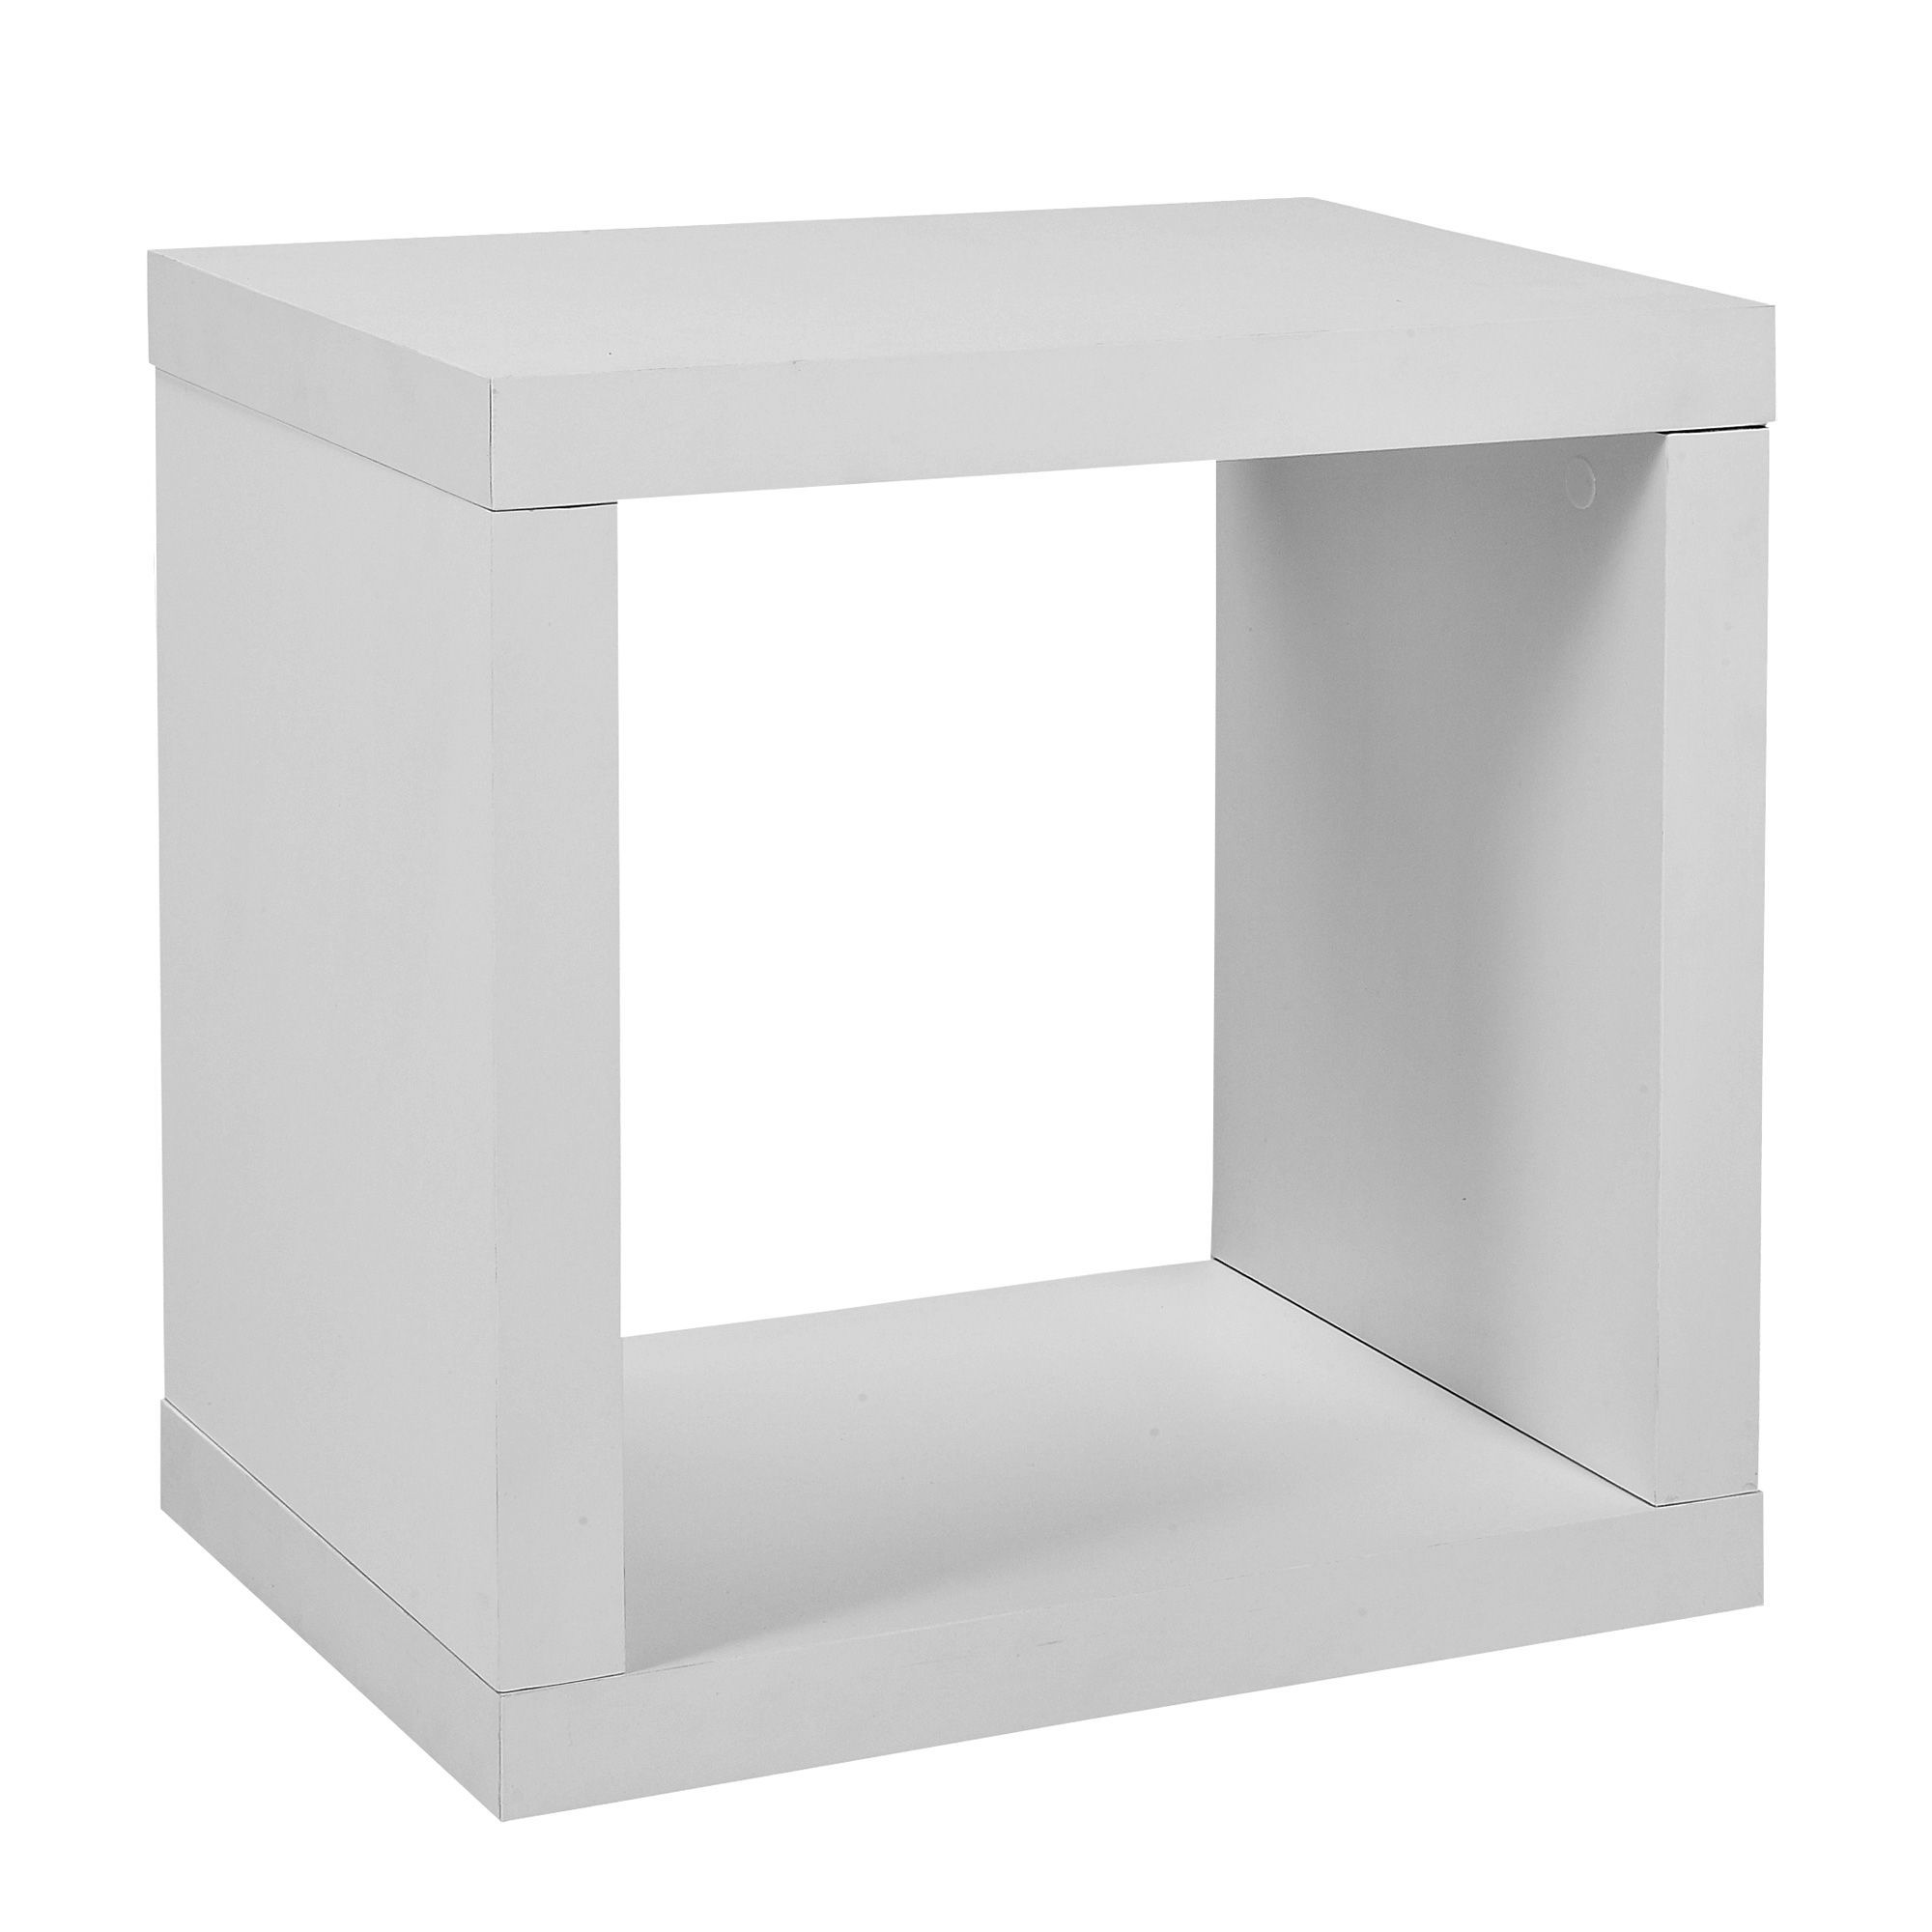 Etagere Blanche Alinea Cube Blanc Blanc Kubico 26 90 Alinéa Products For The New